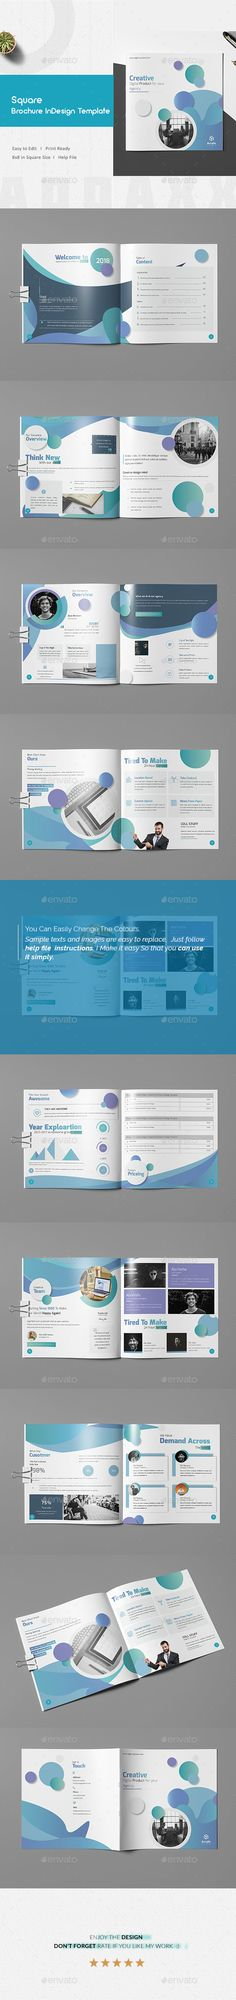 Brochure Template InDesign INDD - 16 Pages